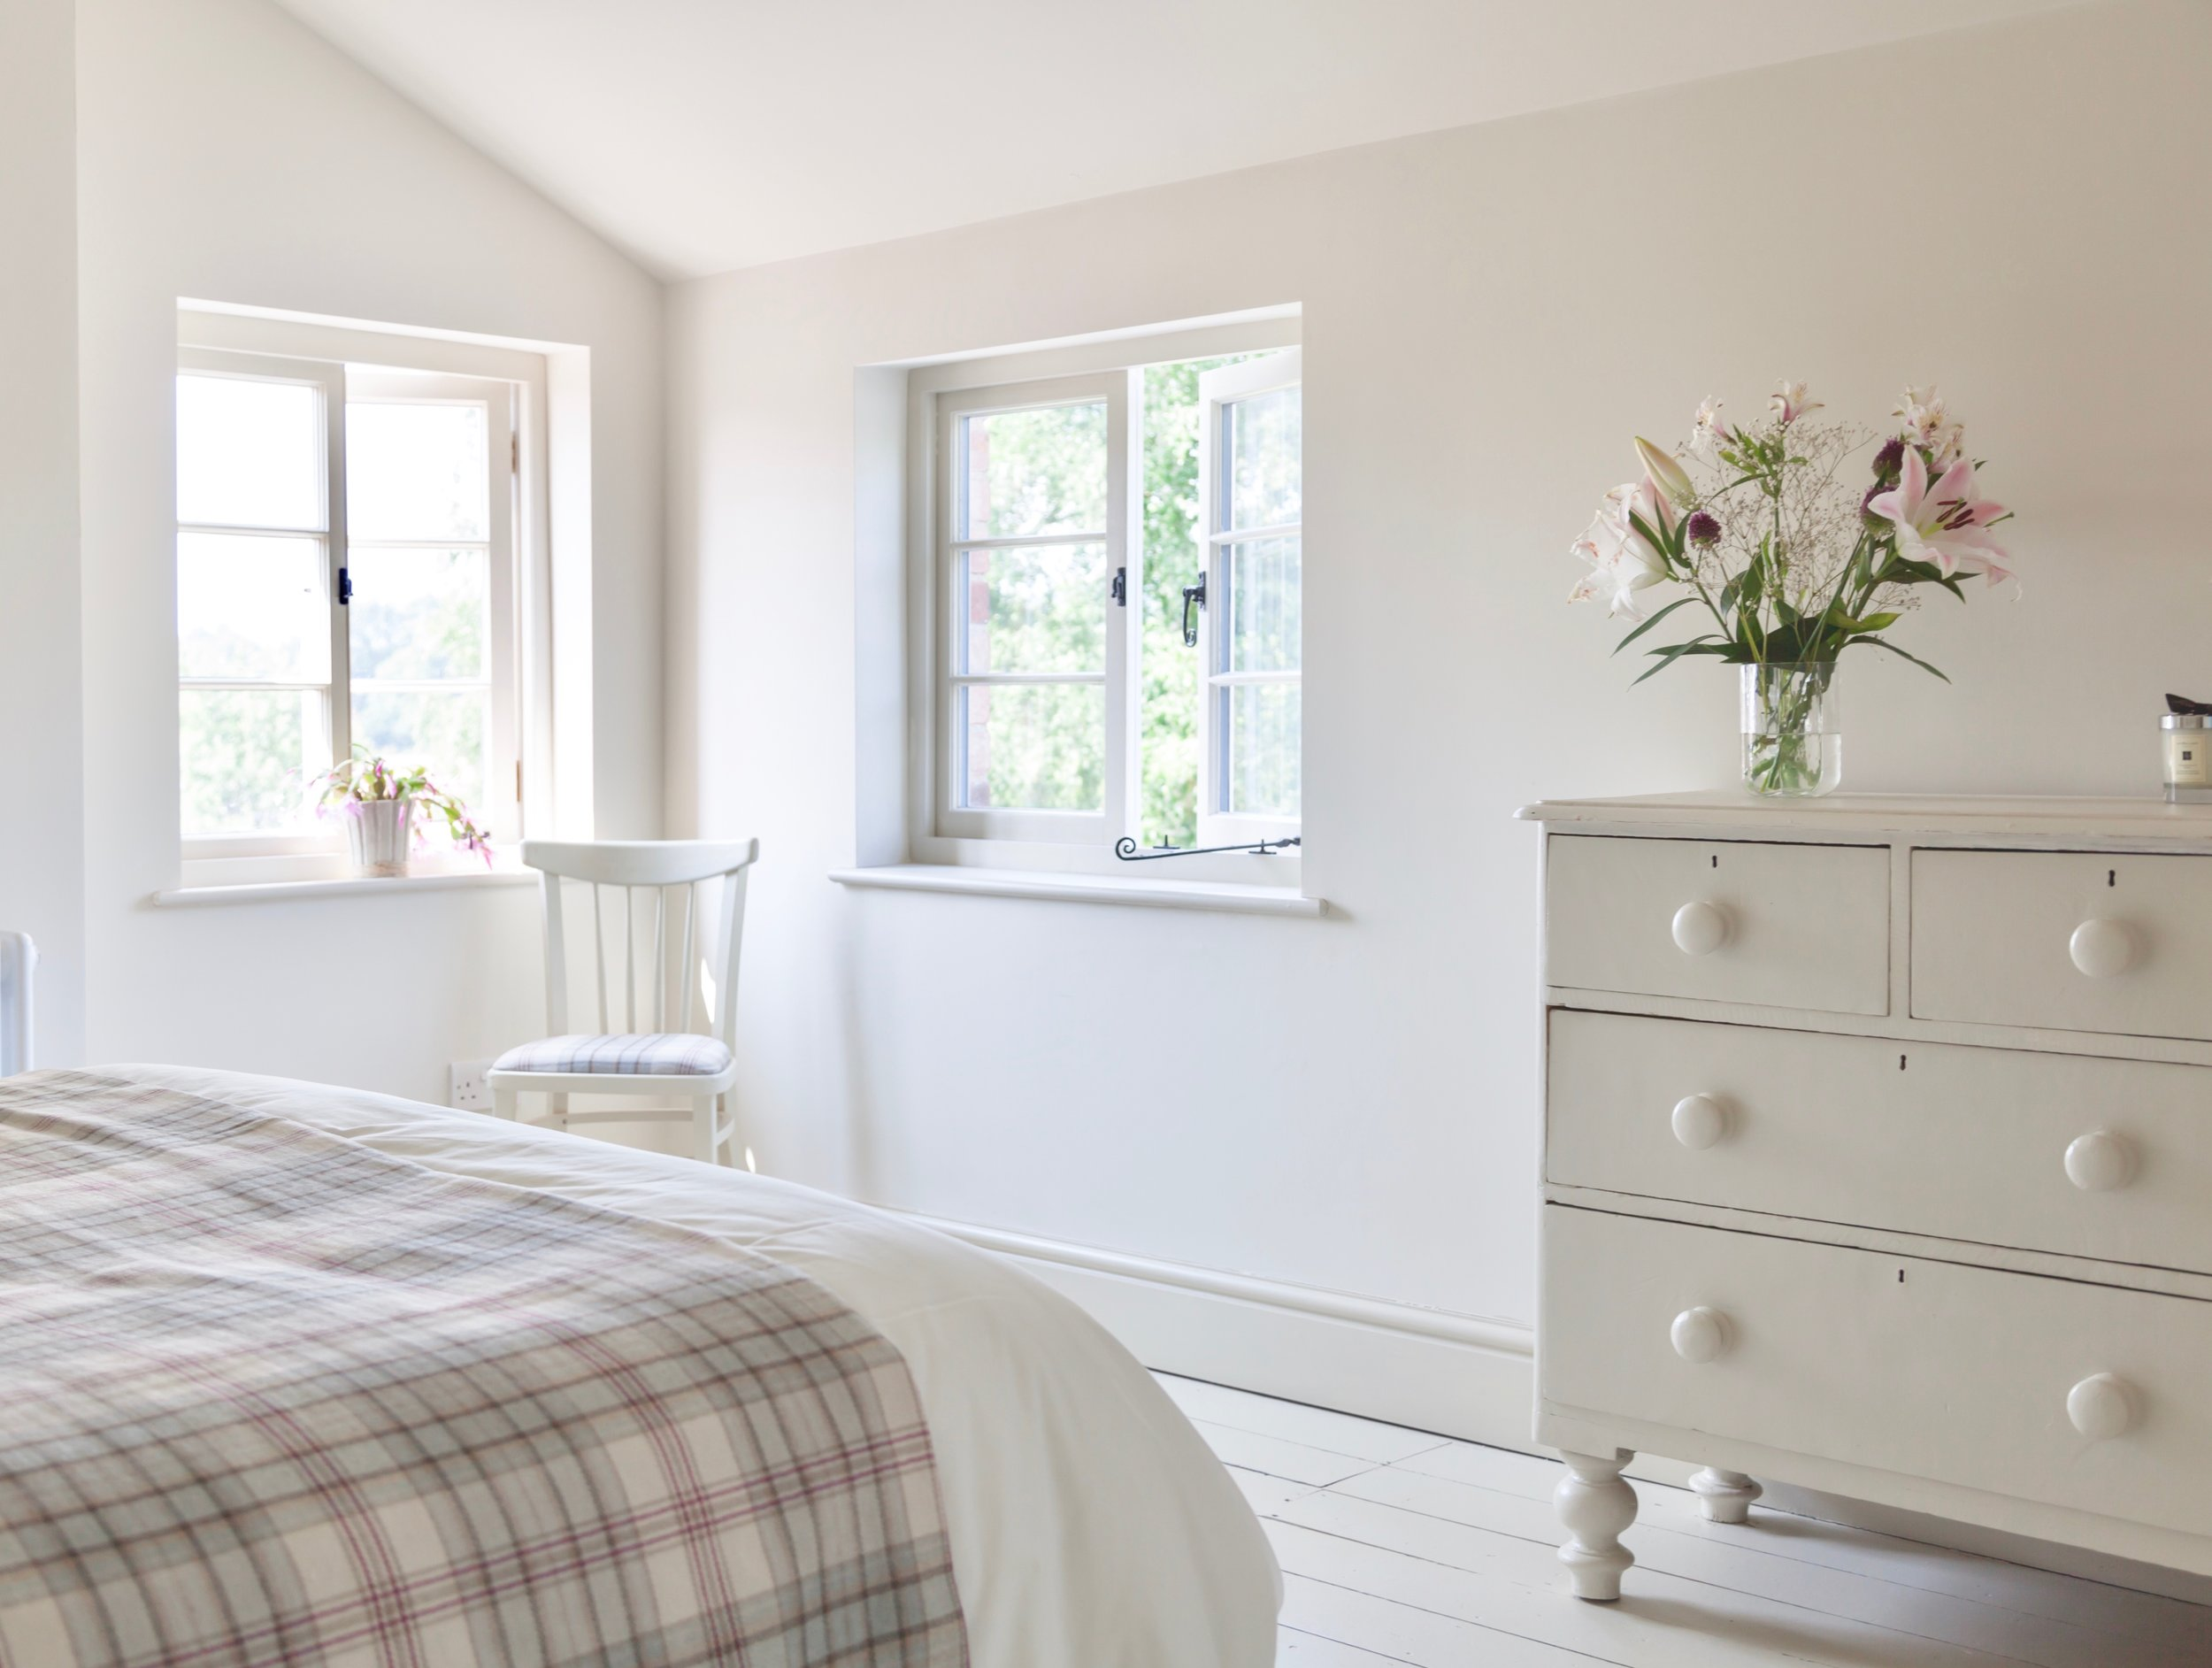 Herefordshire Farmhosue Project - Designed by Hannah Llewelyn Interior Design - hlinteriors.co.uk26.jpg